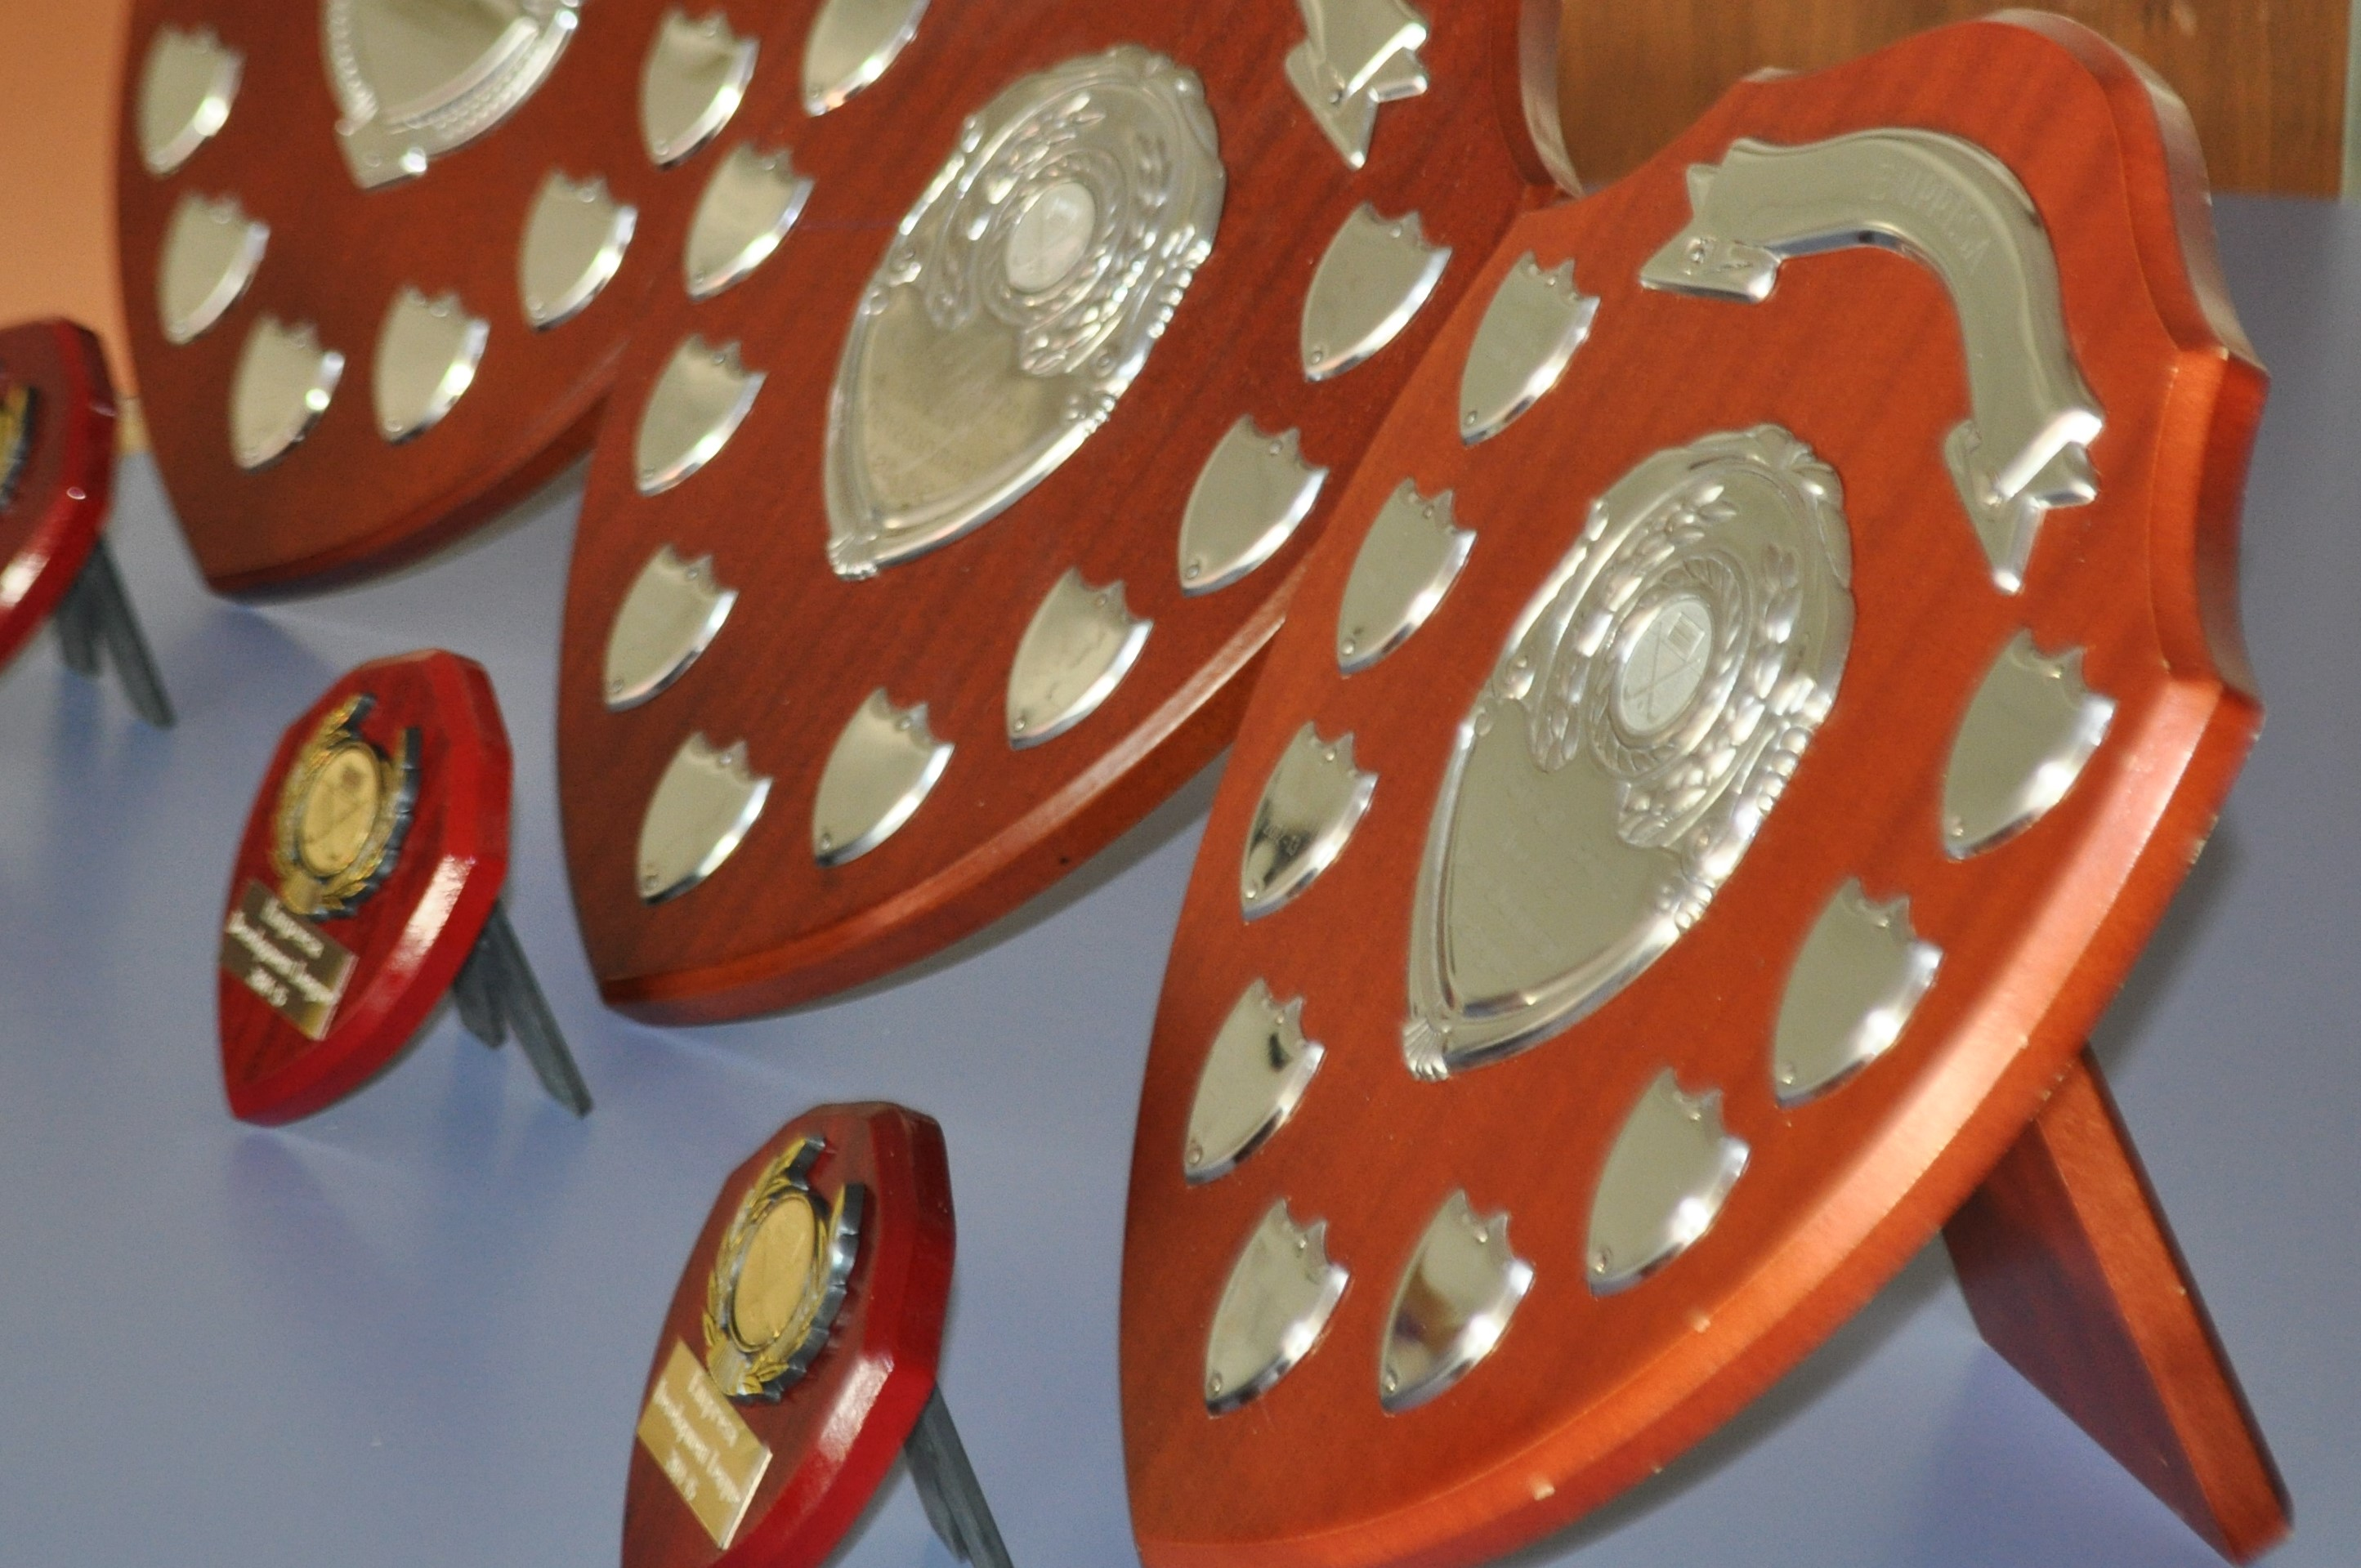 Image for article: Winners trophies to be awarded at the Empresa Women's Norfolk Hockey AGM